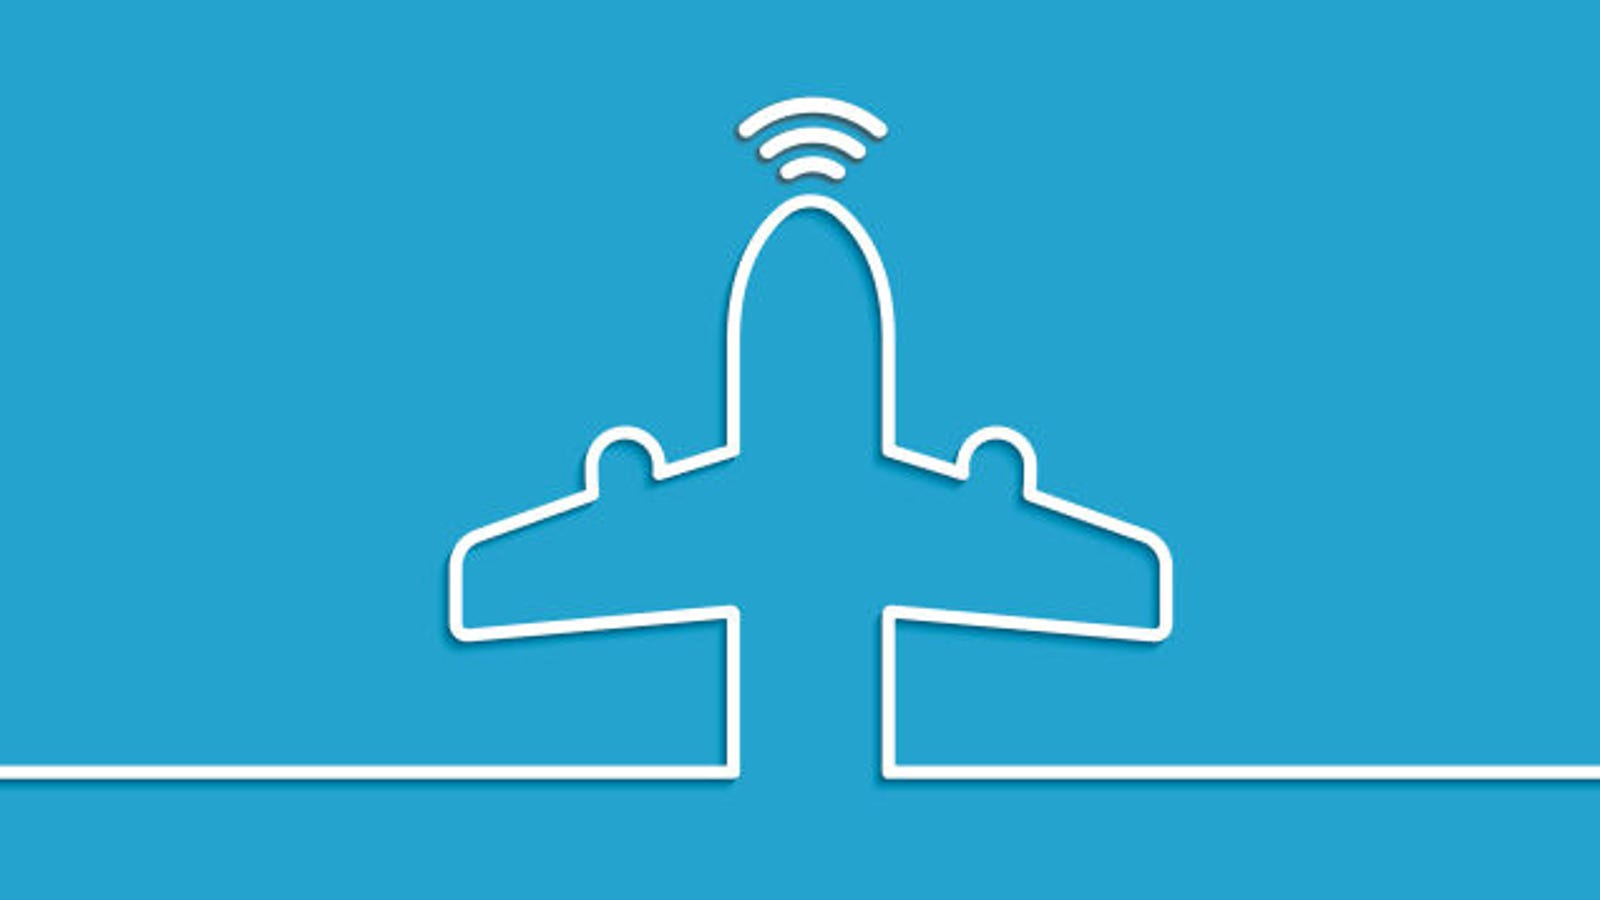 Every Major Airline's Wifi Service, Explained and Ranked